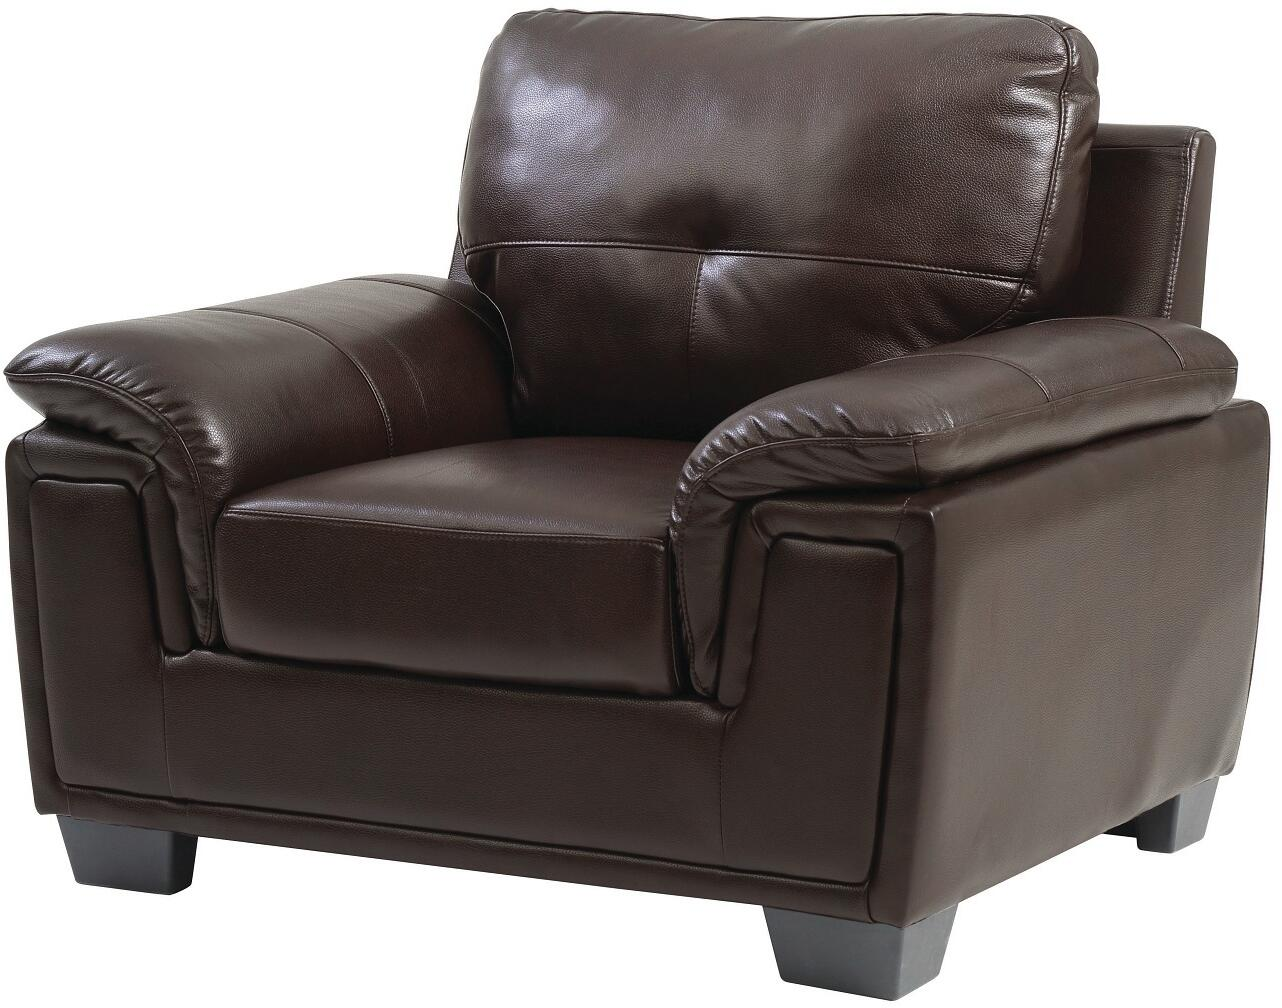 Glory furniture g665c faux leather armchair in dark brown for Furniture connection